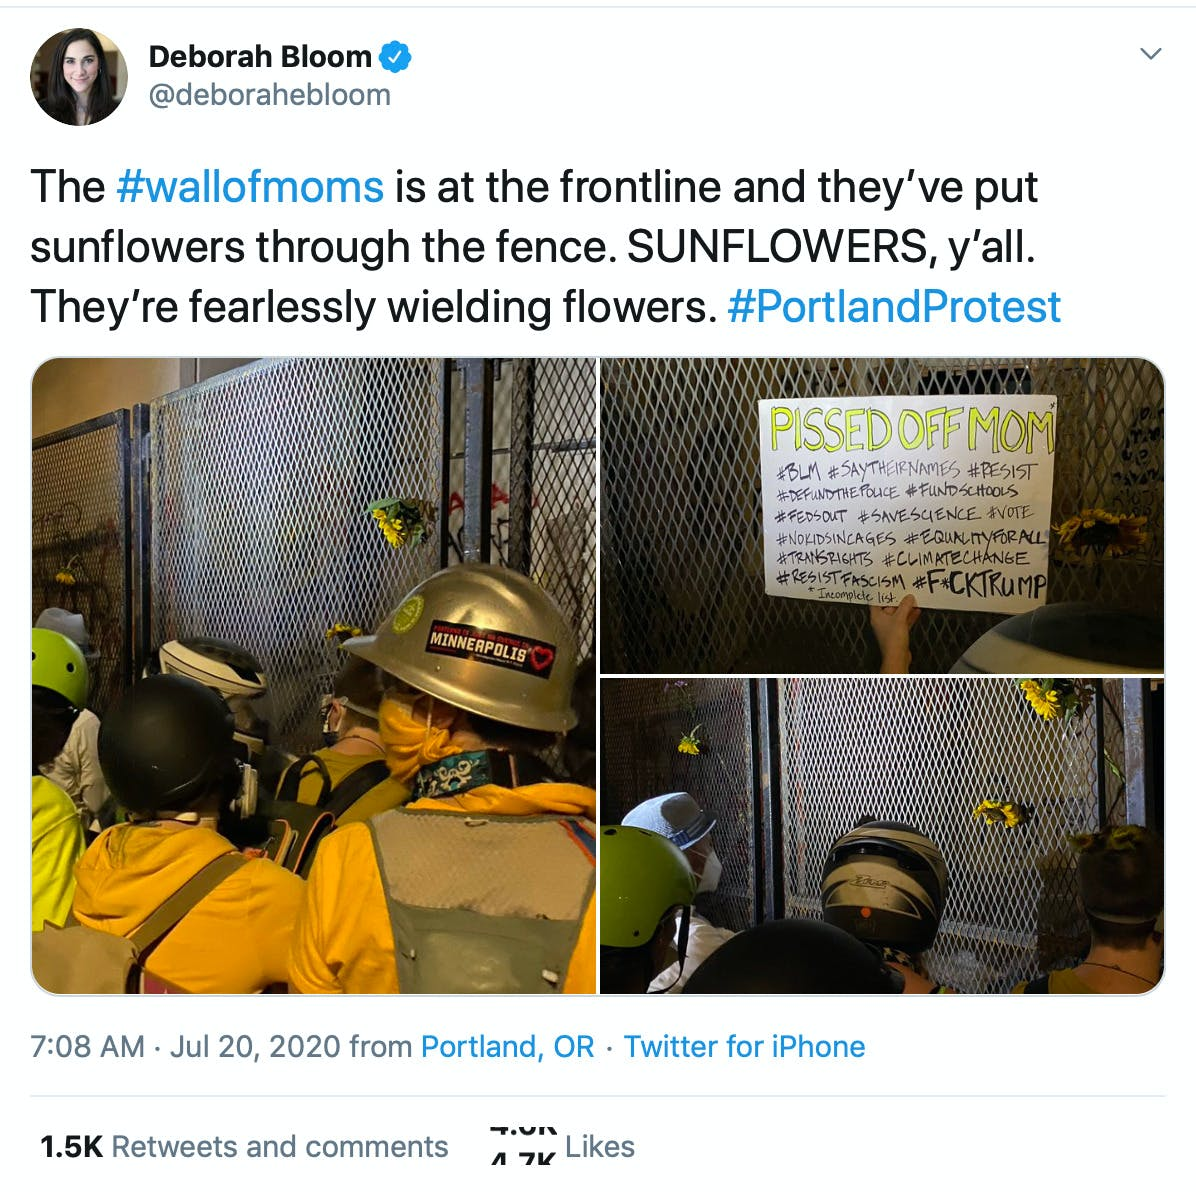 The #wallofmoms is at the frontline and they've put sunflowers through the fence. SUNFLOWERS, y'all. They're fearlessly wielding flowers. #PortlandProtest